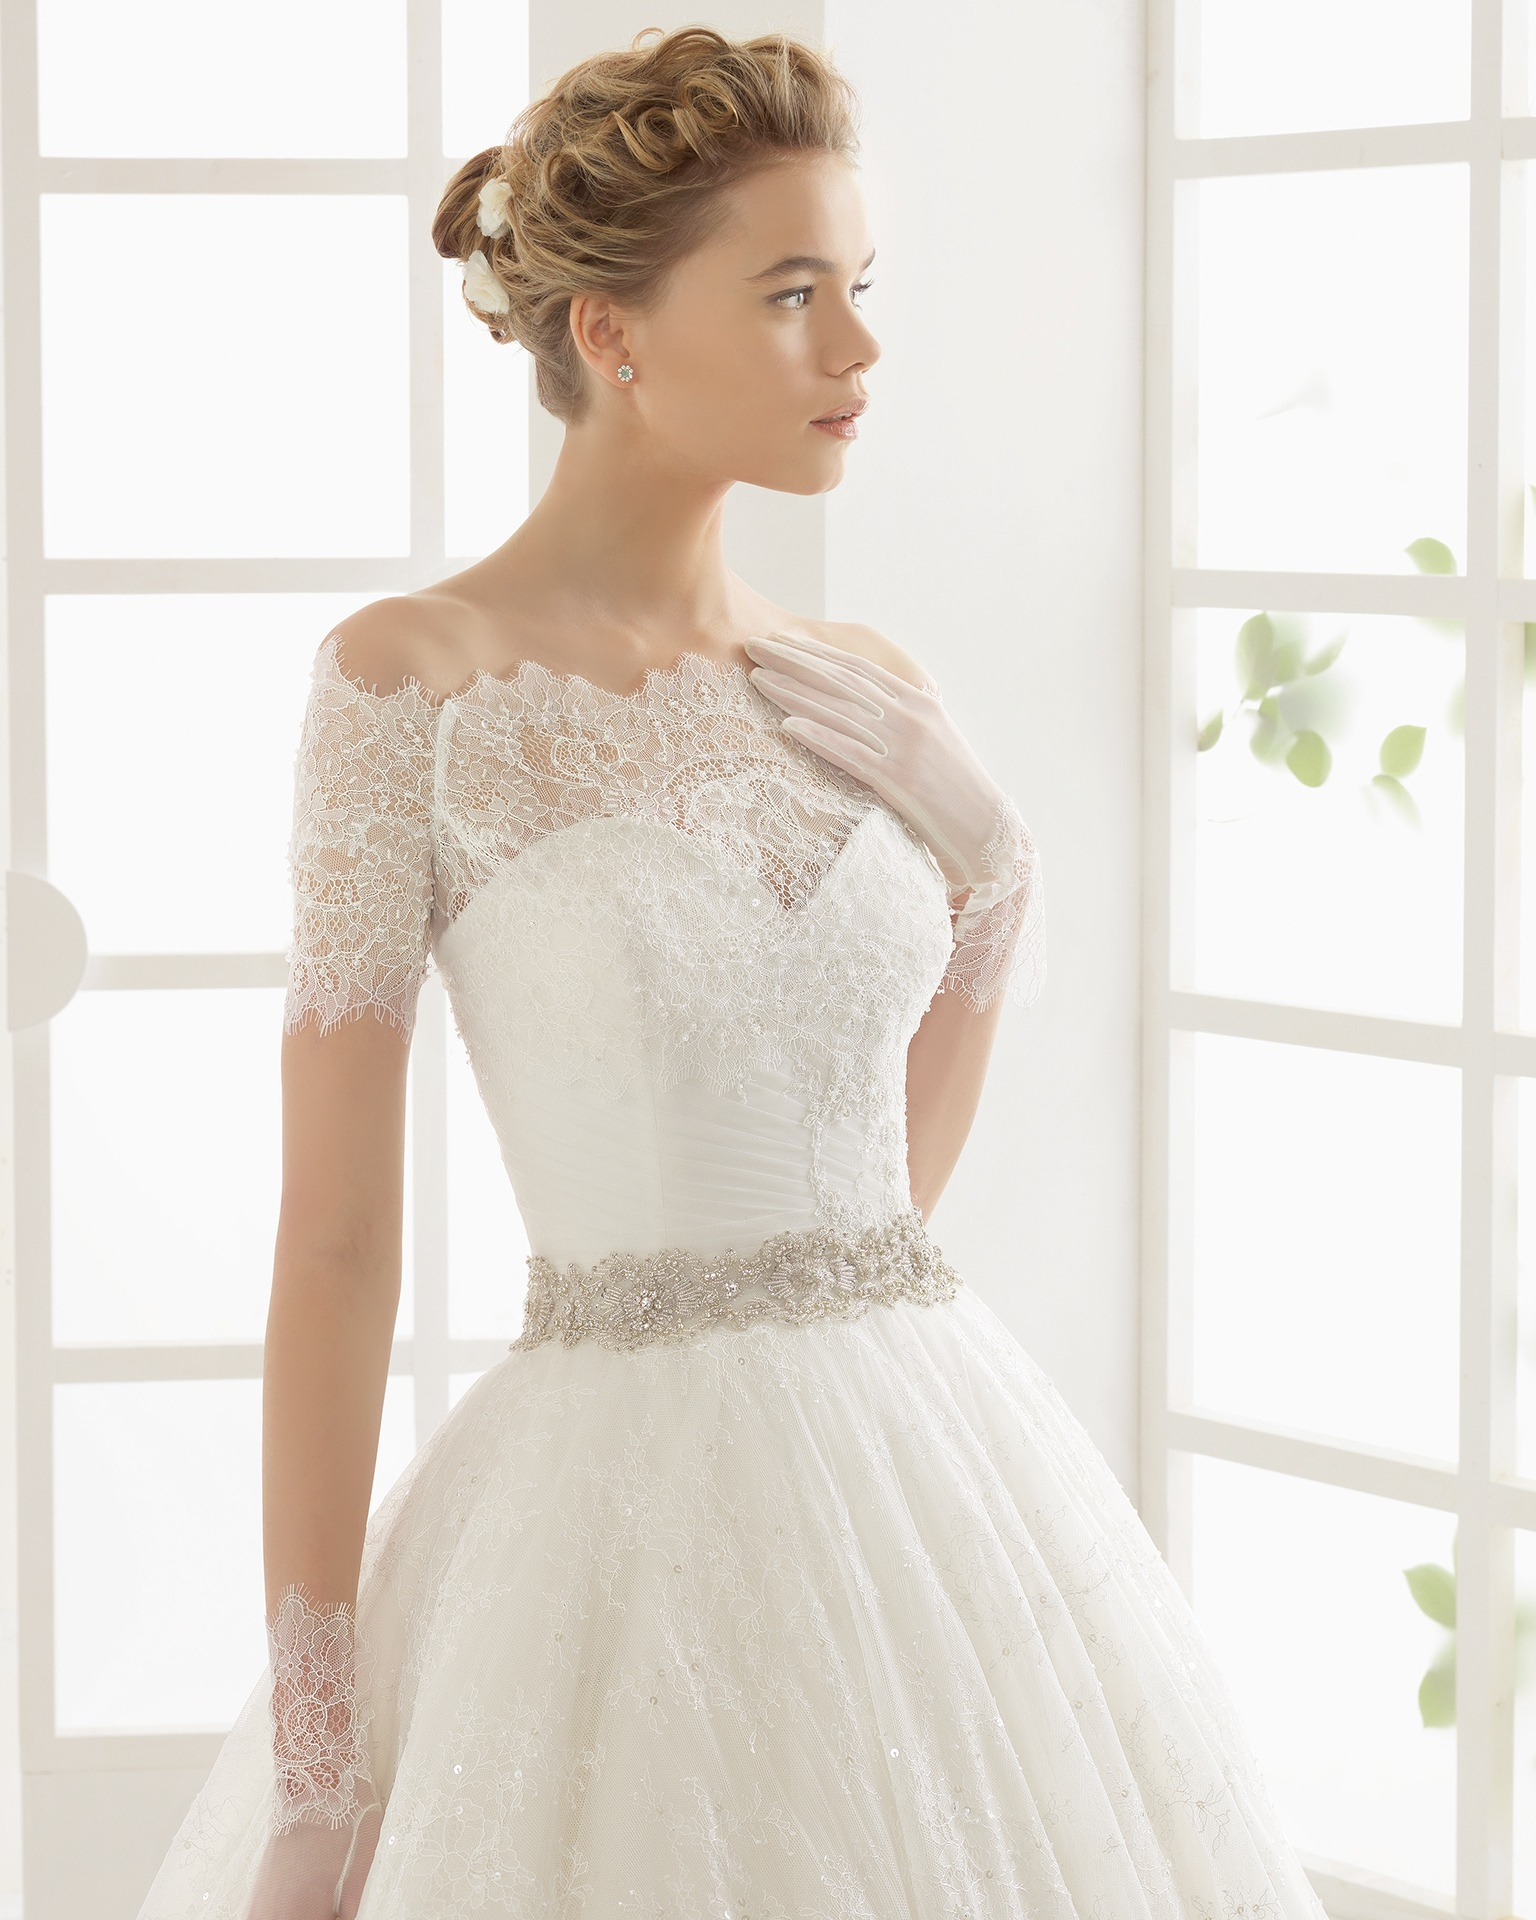 Off shoulder wedding dress with thin lace